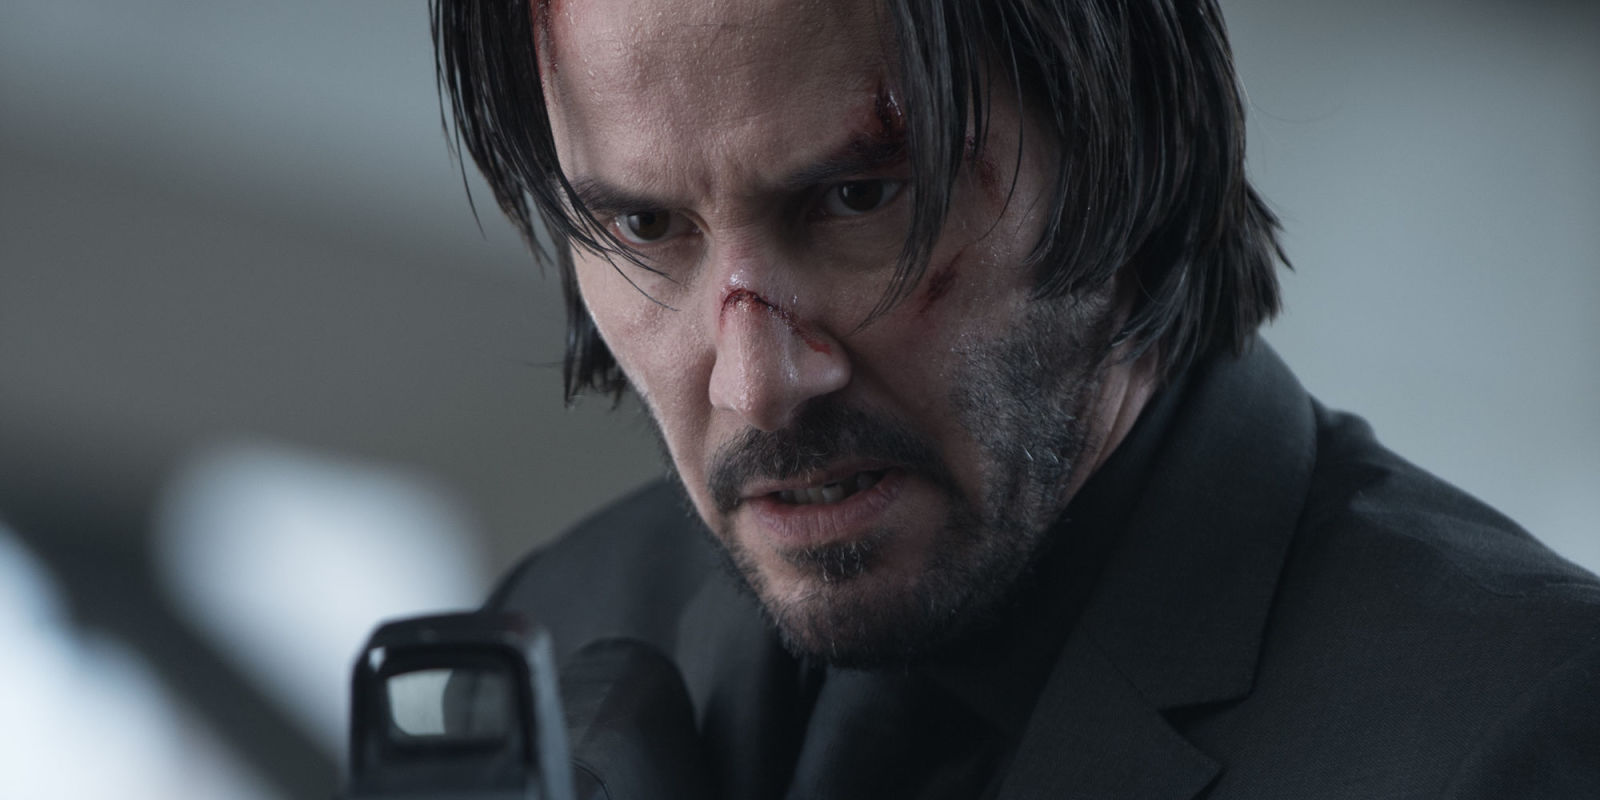 Keanu Reeves as John Wick in John Wick Chapter 2